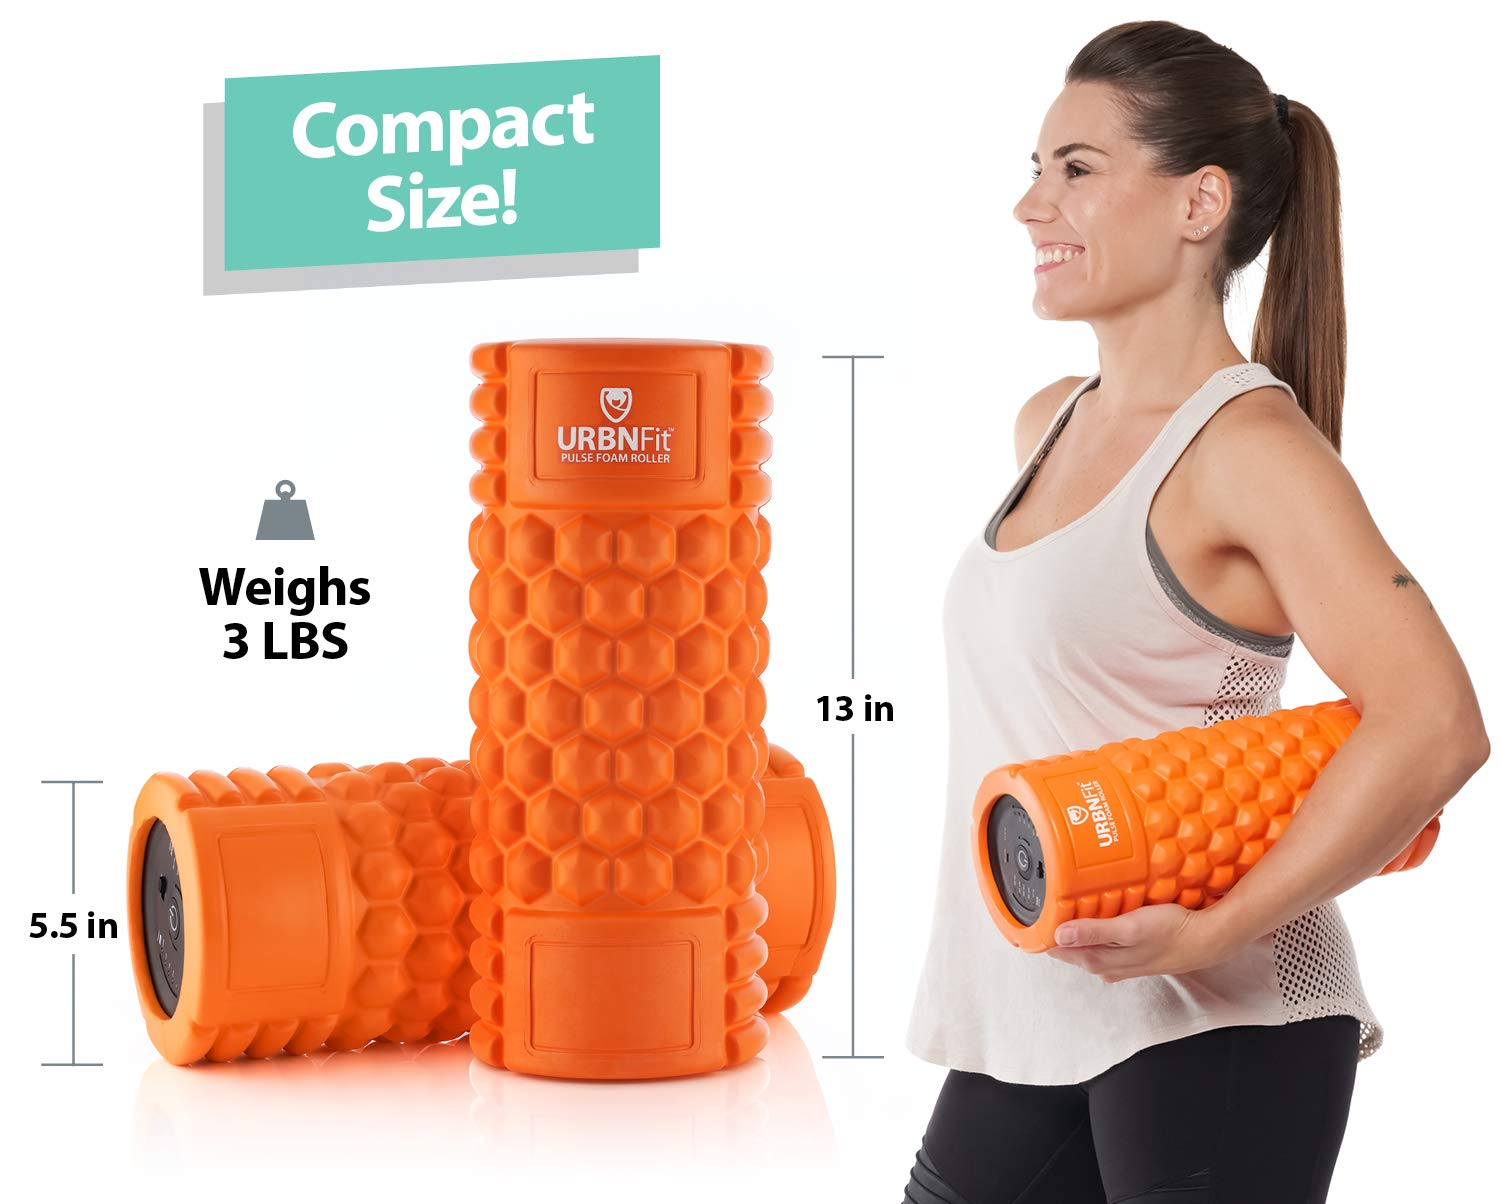 Vibrating Foam Roller - 5-Speed Massager and Roller for Muscle Recovery, Deep Tissue Trigger Point Massage Therapy - 5 Levels from Low To High Intensity Massage For Workouts -Includes Stretching Guide by URBNFit (Image #4)